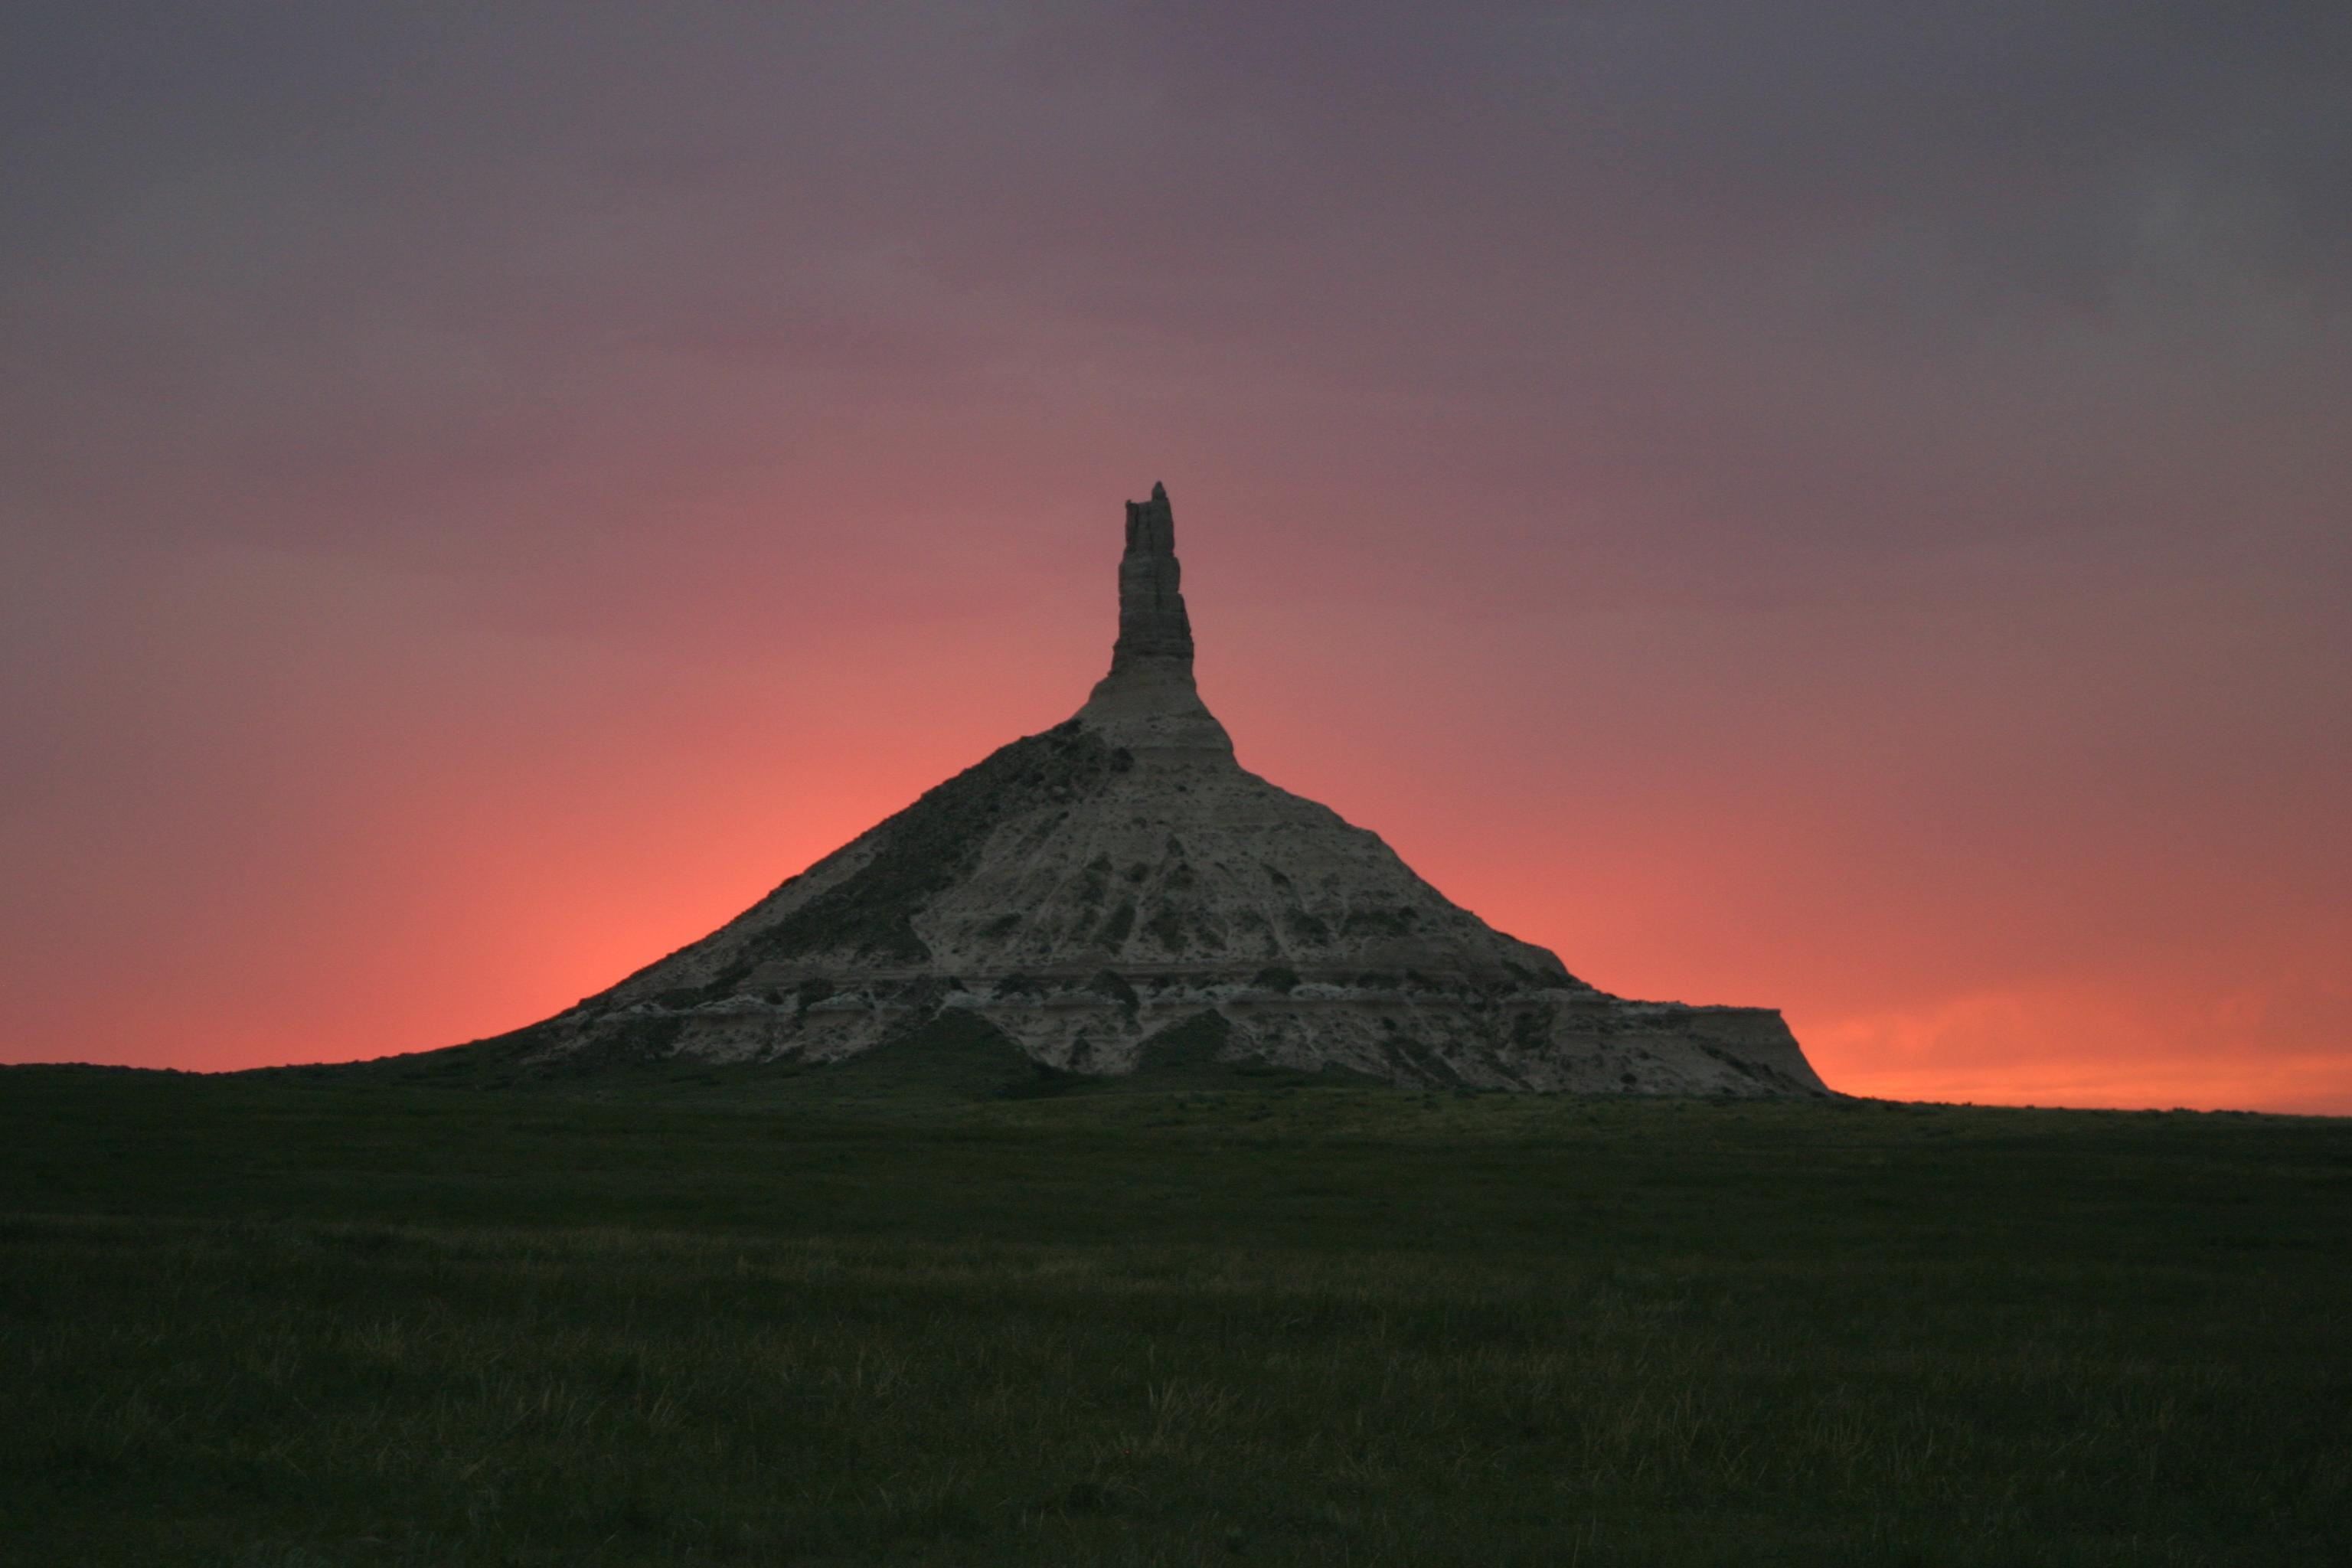 chimney rock bbw dating site The name of this particular region is called chaco canyon and i will be sharing some information about a site called chimney rock that is located within chaco canyon chimney rock is.